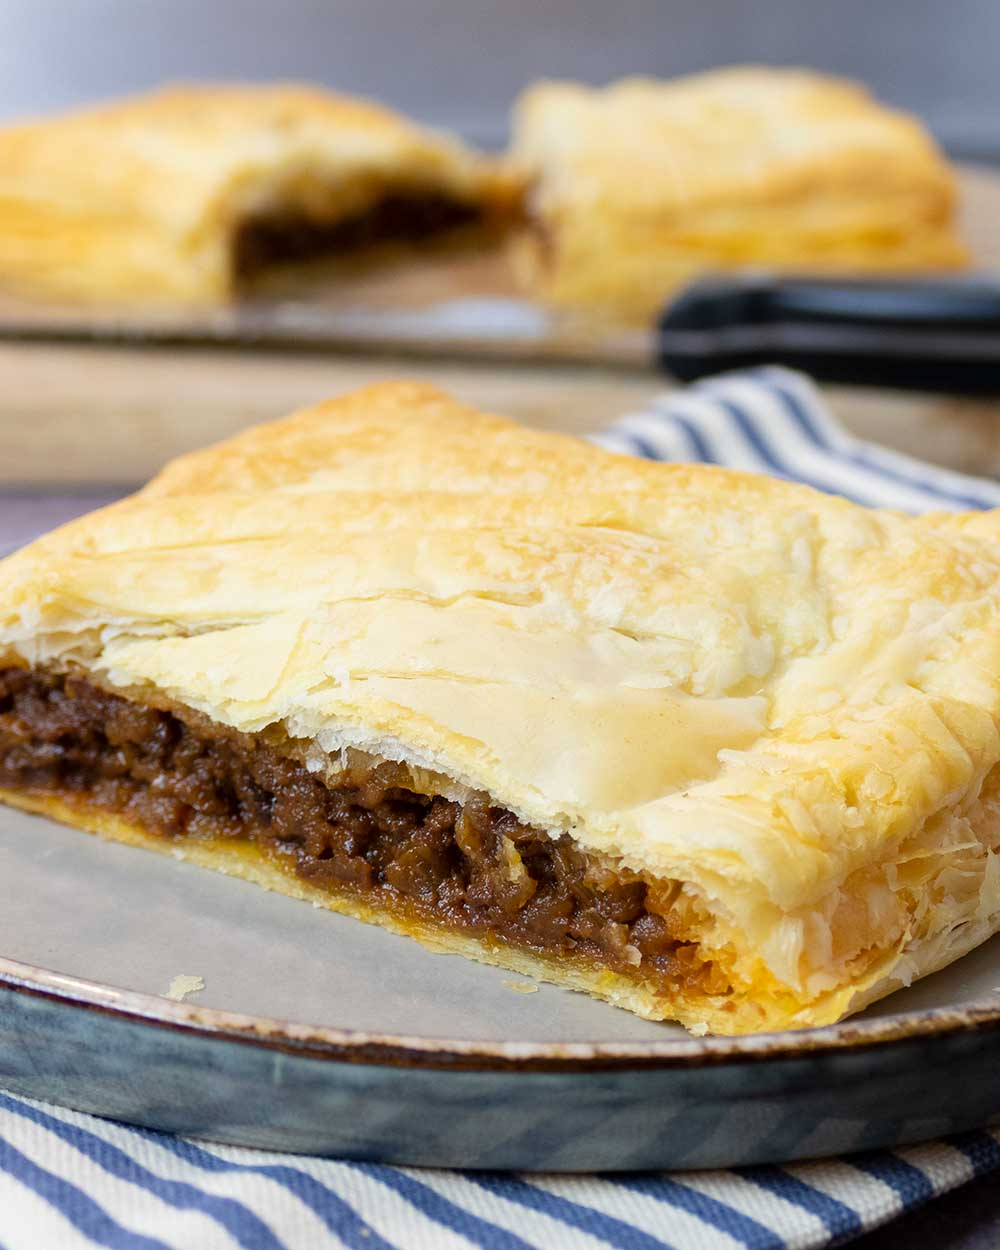 Plant-based puff pastry steak bake recipe that's easy to make